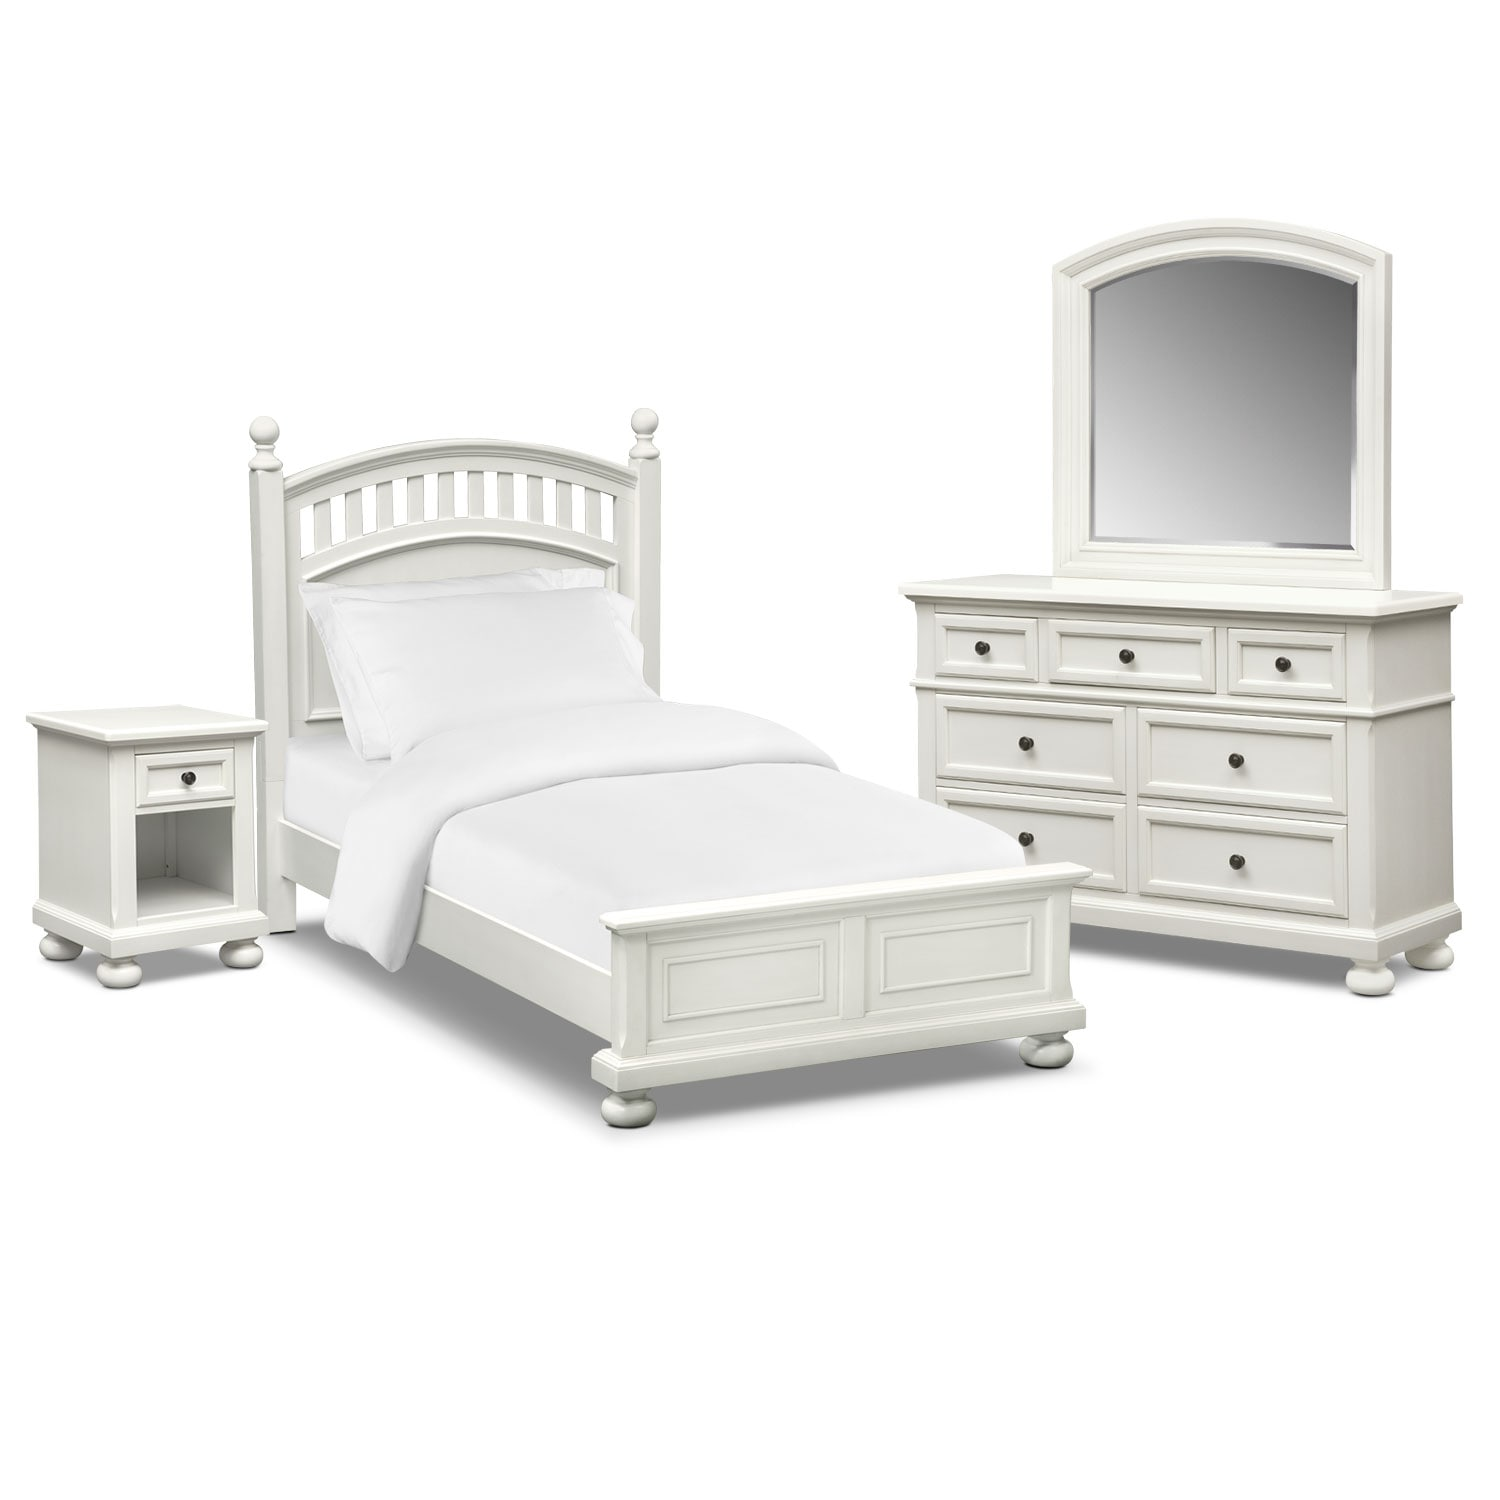 Bedroom Furniture - Hanover Youth 6-Piece Poster Bedroom Set with Nightstand, Dresser and Mirror